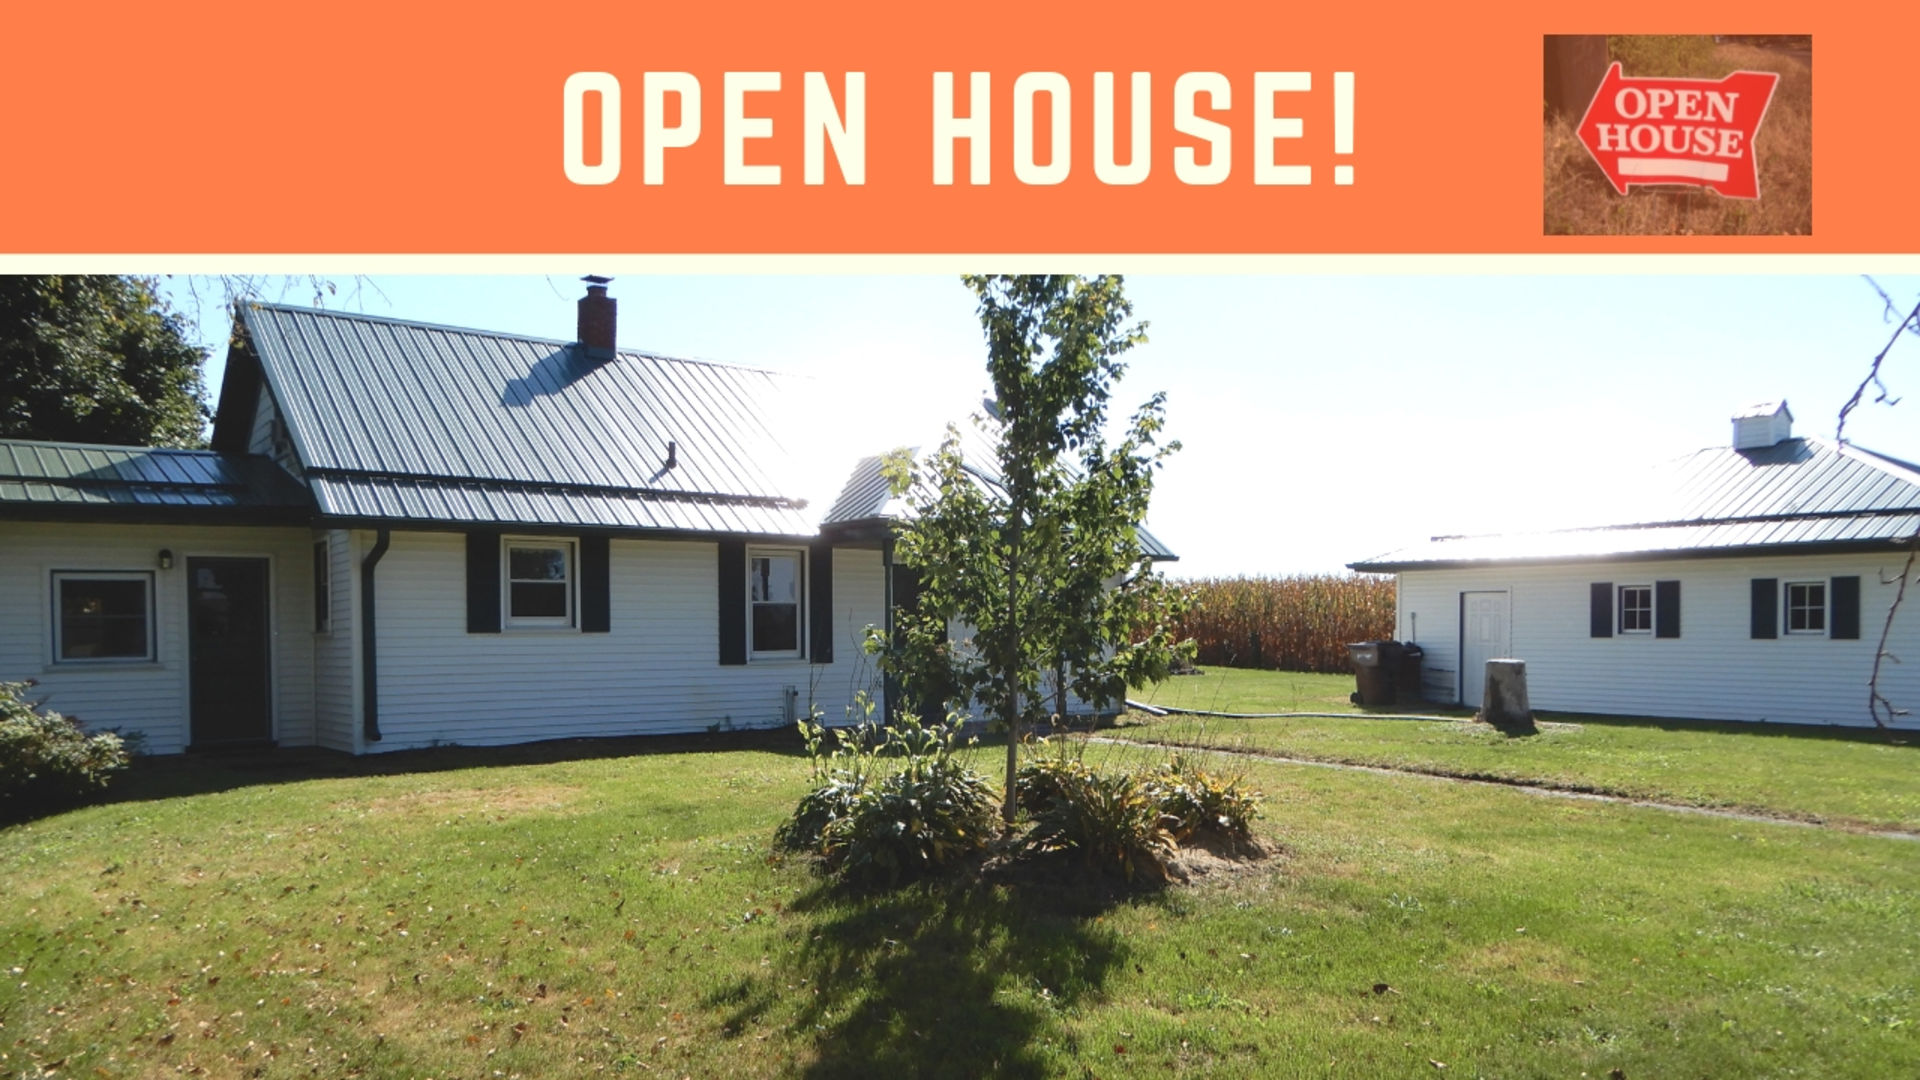 Open House: October 7th 2018